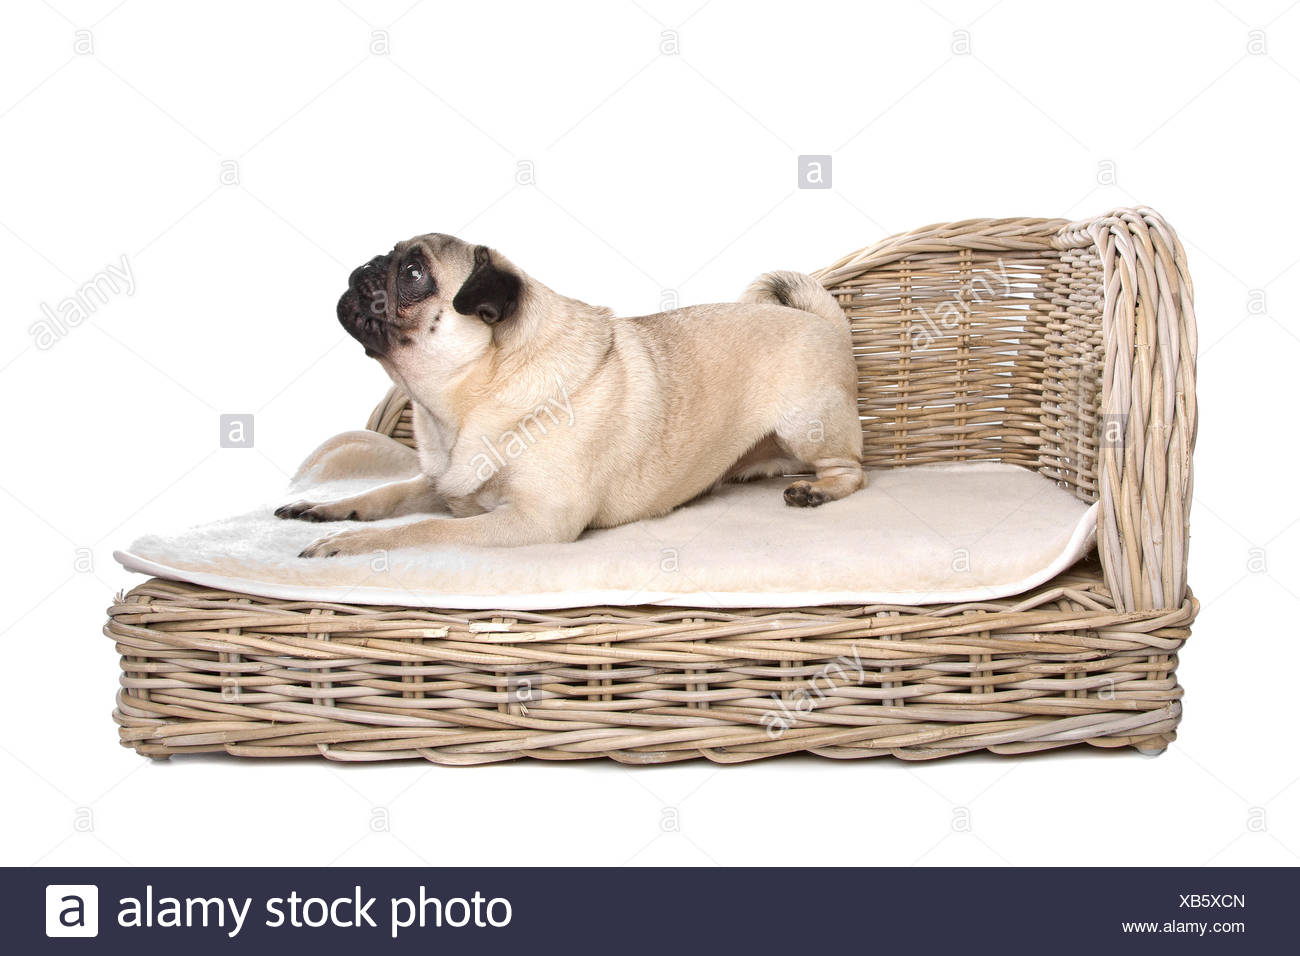 Sleepy Pug Photos & Sleepy Pug Images - Alamy